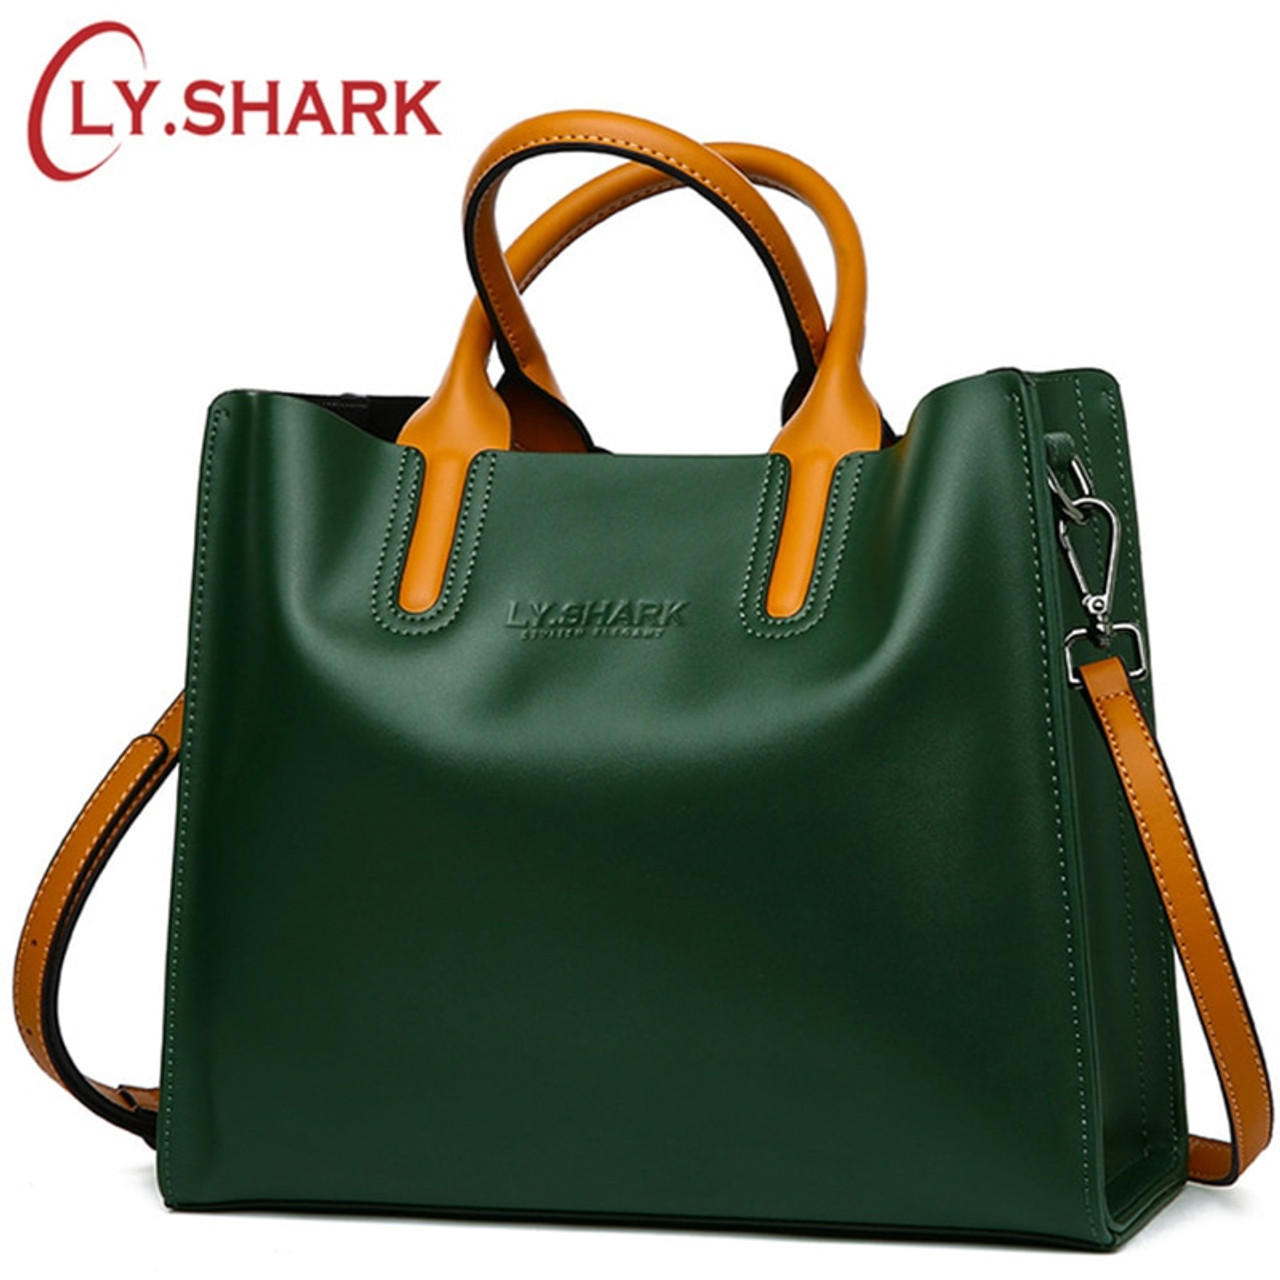 8d6220ee9 SHARK Big Messenger Bag Women Shoulder Bag Female Bag Ladies Genuine  Leather Bags For ...